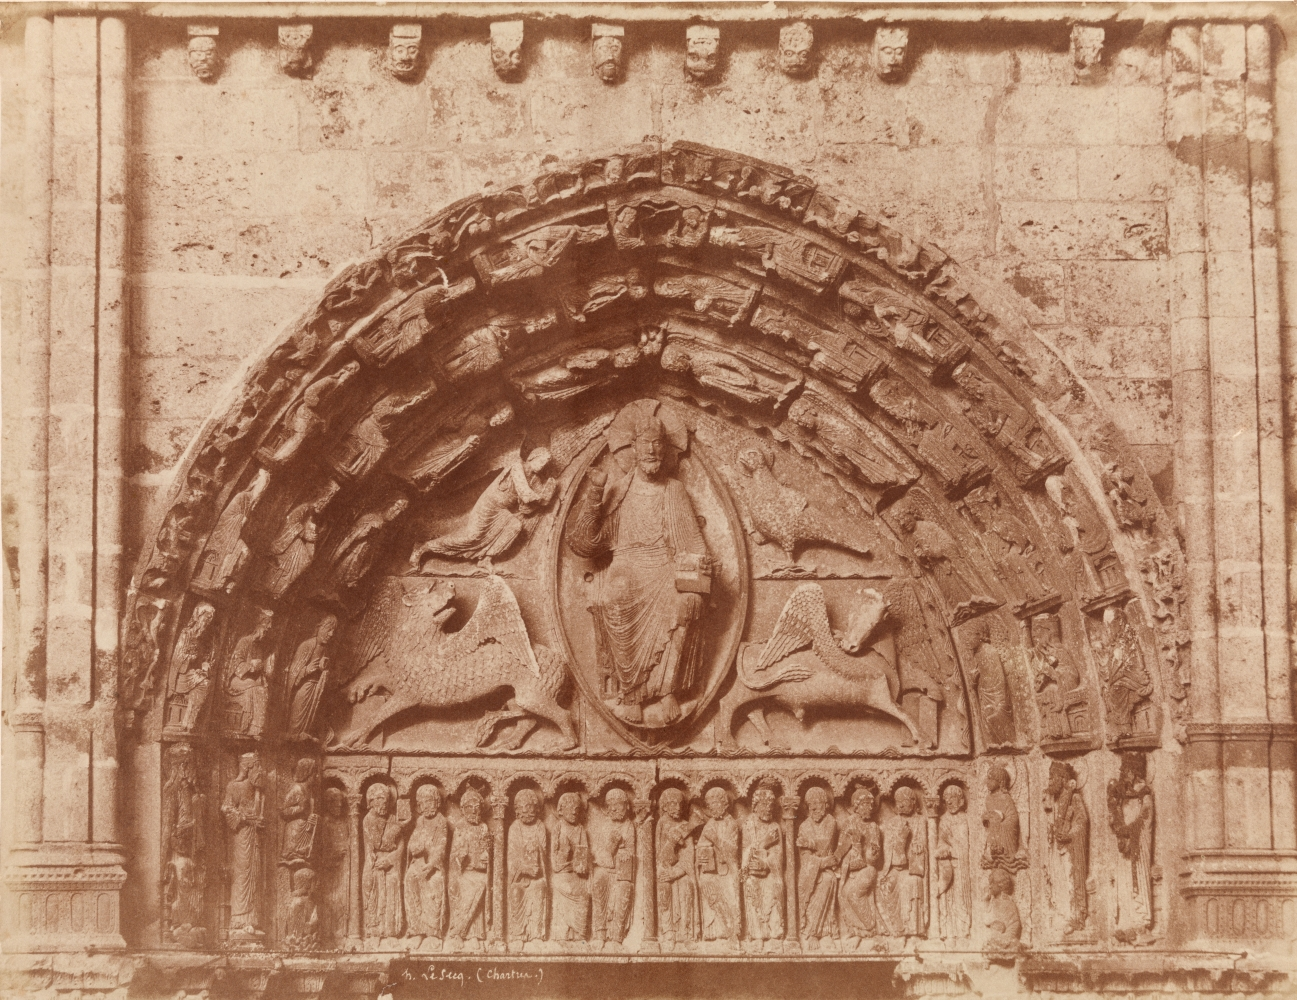 Henri LE SECQ (French, 1818-1882) Royal Portal tympanum, Chartres Cathedral, 1852 Coated salt print from a paper negative 35.7 x 47.9 cm mounted on 46.1 x 59.4 cm card Signed in the negative